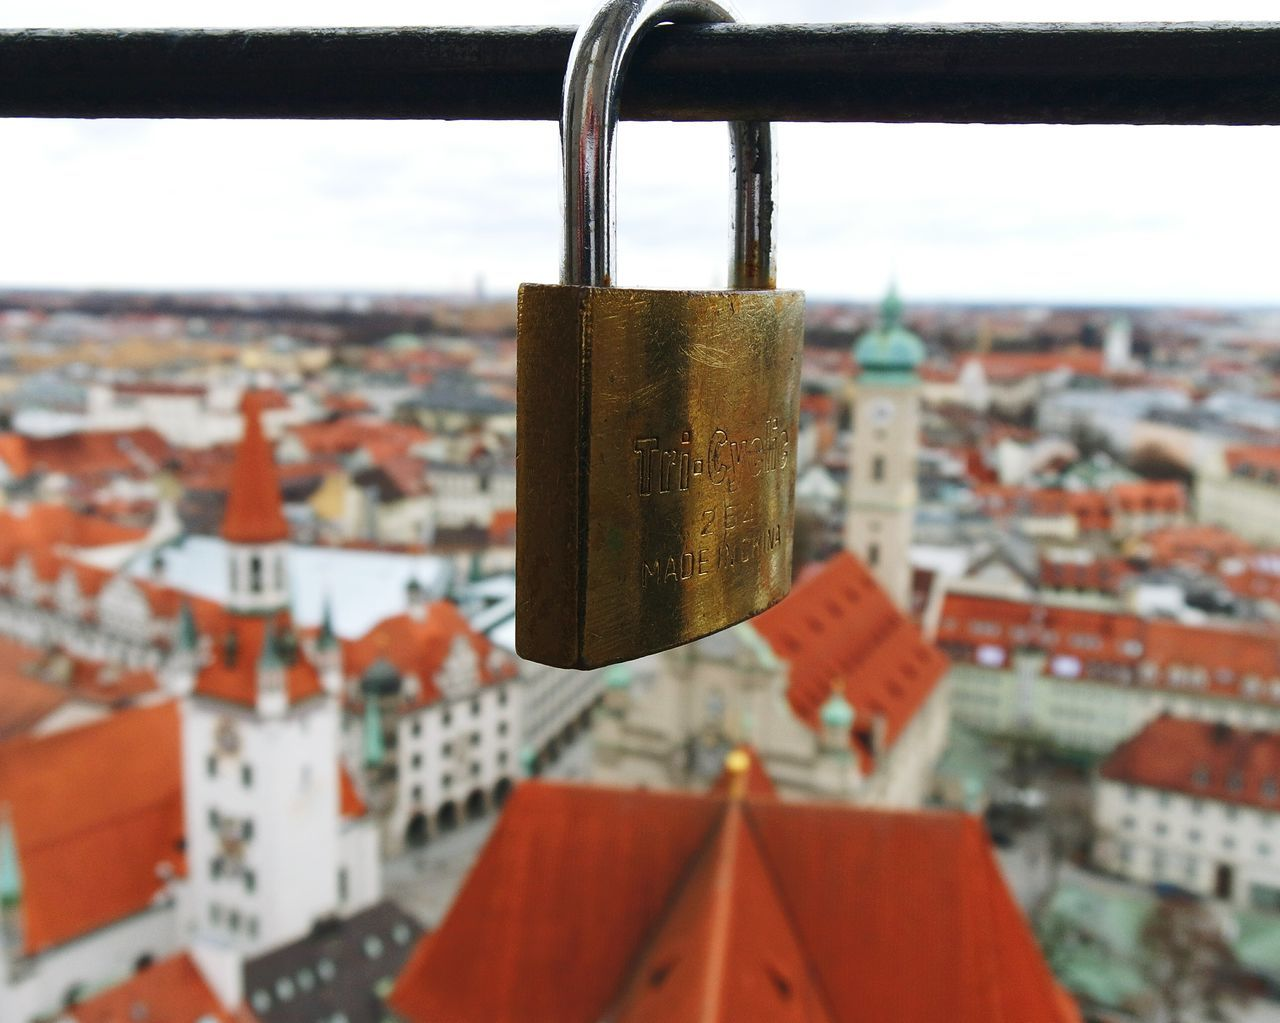 lovelock at the belltower of st.peterchurch in Munich Focus On Foreground City Padlock Hanging Sky Building Exterior Close-up Love Lock No People Cityscape Architecture Outdoors Day Lock